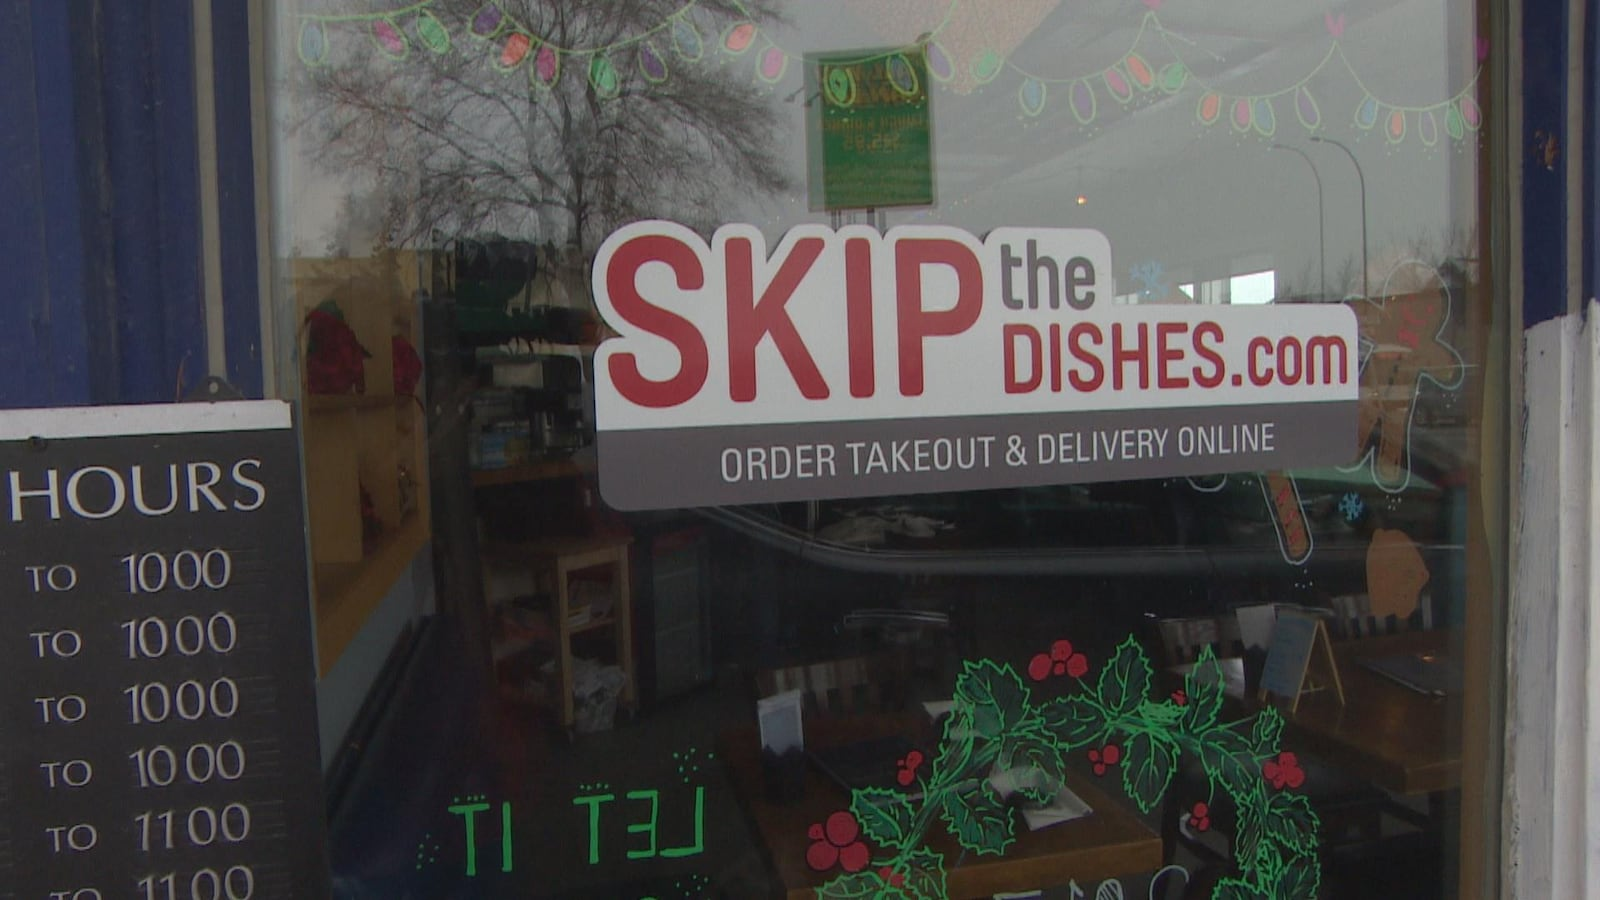 La vitrine d'un magasin avec un autocollant «Skip the dishes».